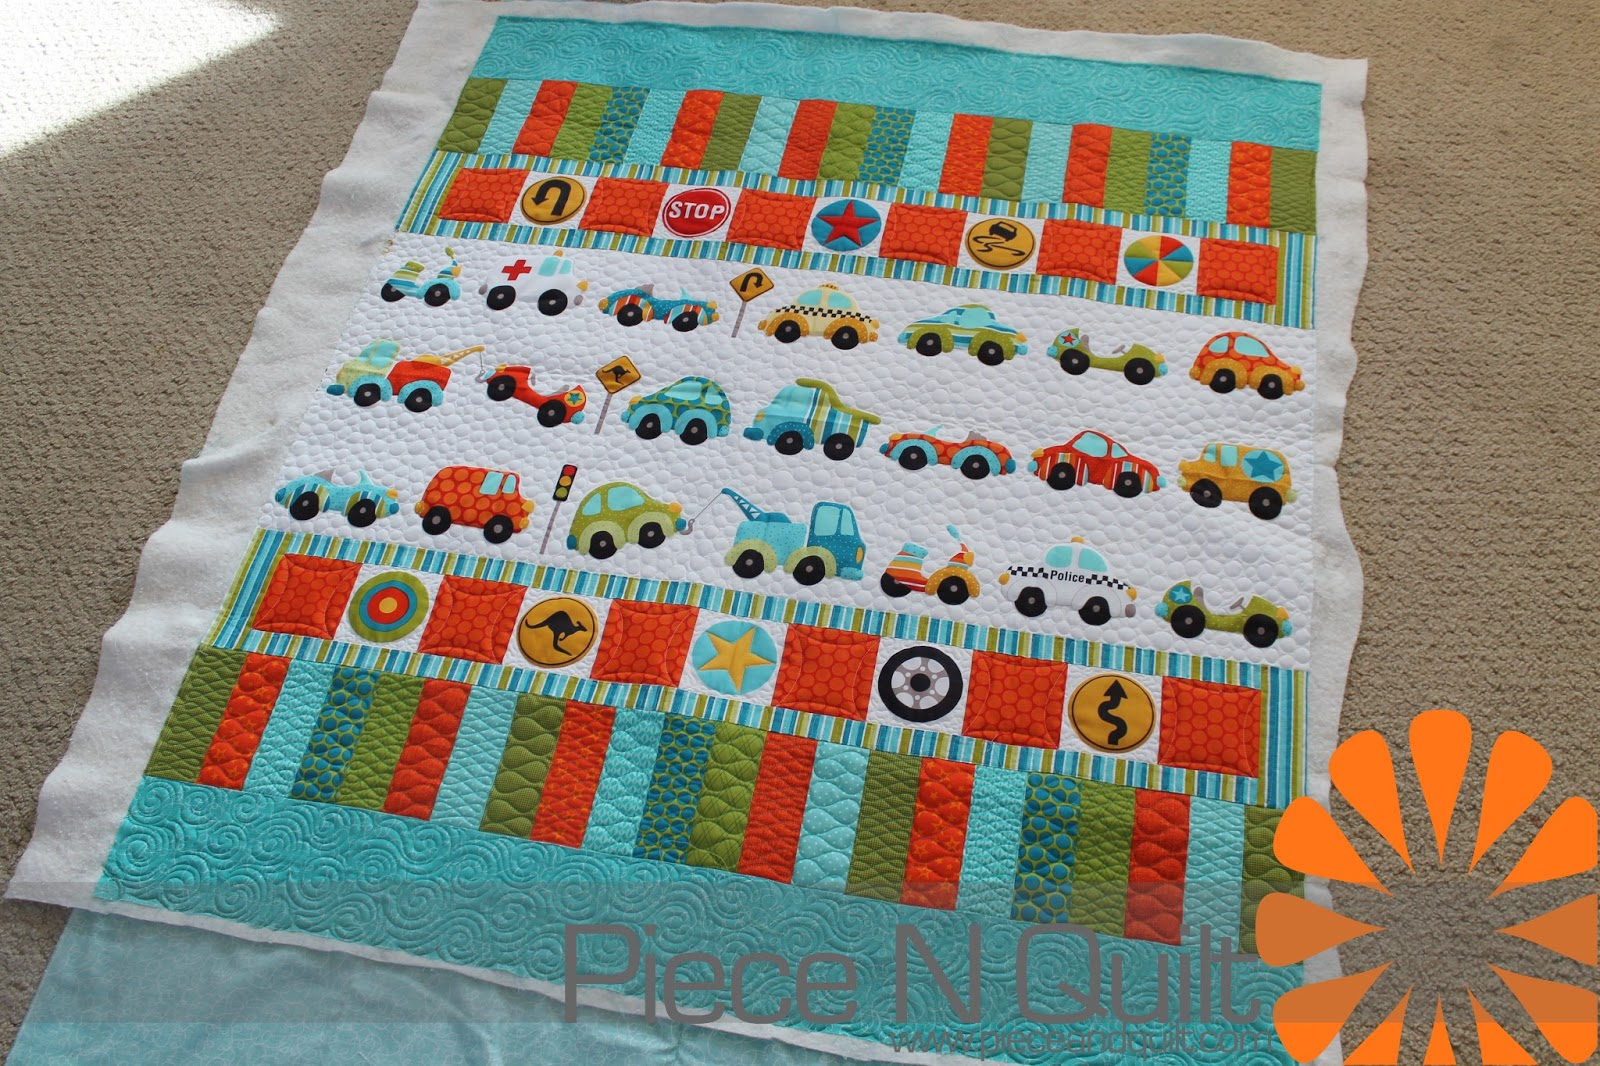 Piece n quilt car quilt little boy quilt for Boy quilt fabric